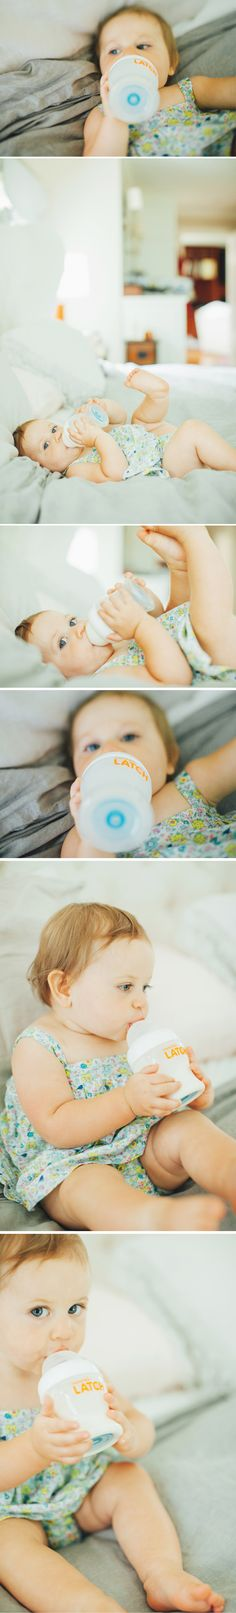 Our friend La Petite Peach shares how she helped her 9 m.o. baby enjoy bottle feeding with LATCH, our bottle designed to ease the transition between breast and bottle. #lovelatch #babybottles